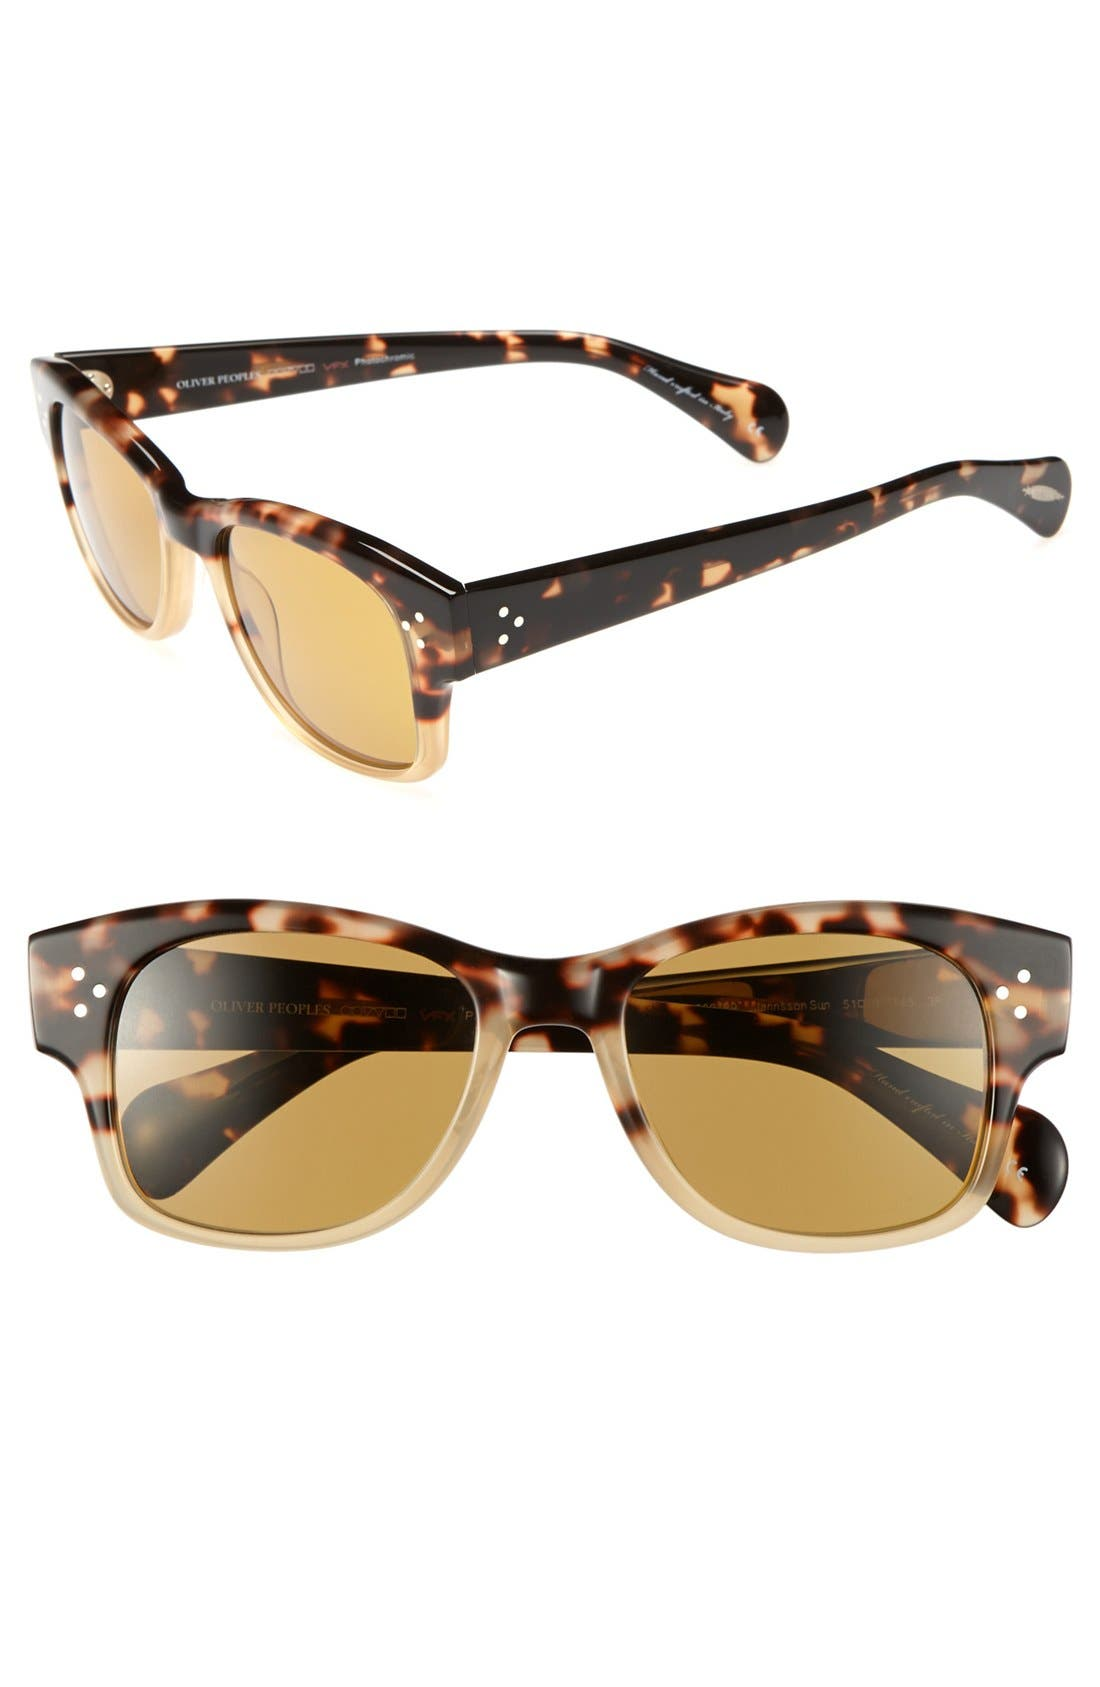 Main Image - Oliver Peoples 'Jannsson' 51mm Sunglasses